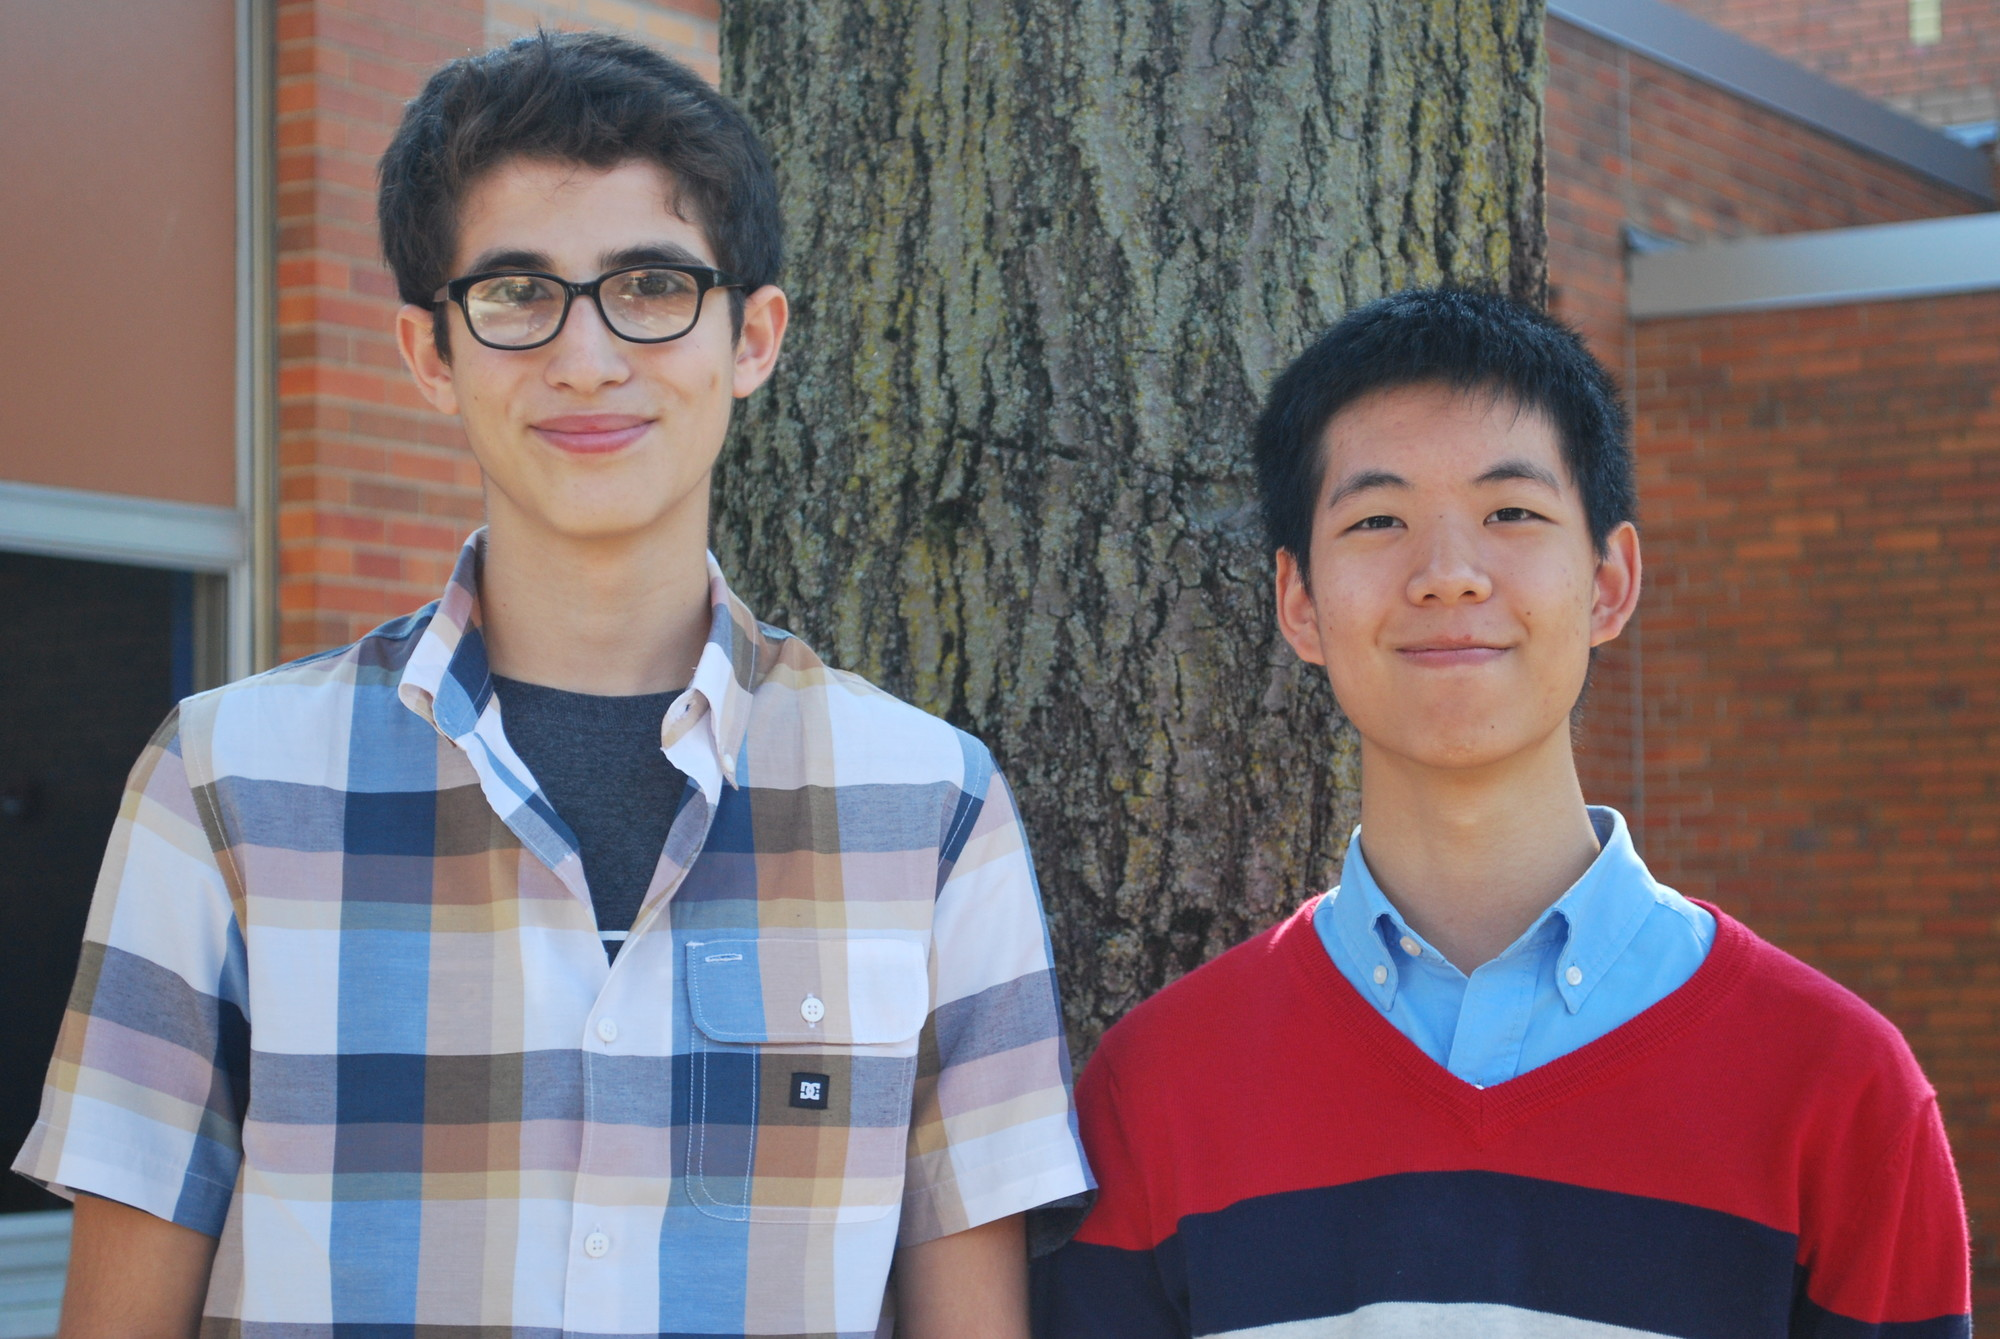 Lawrence High School students Lee Blackbuurn, left, and Arthur Chen, along with project partner Justin Lish of HAFTR, were named Sienens semifinalists.